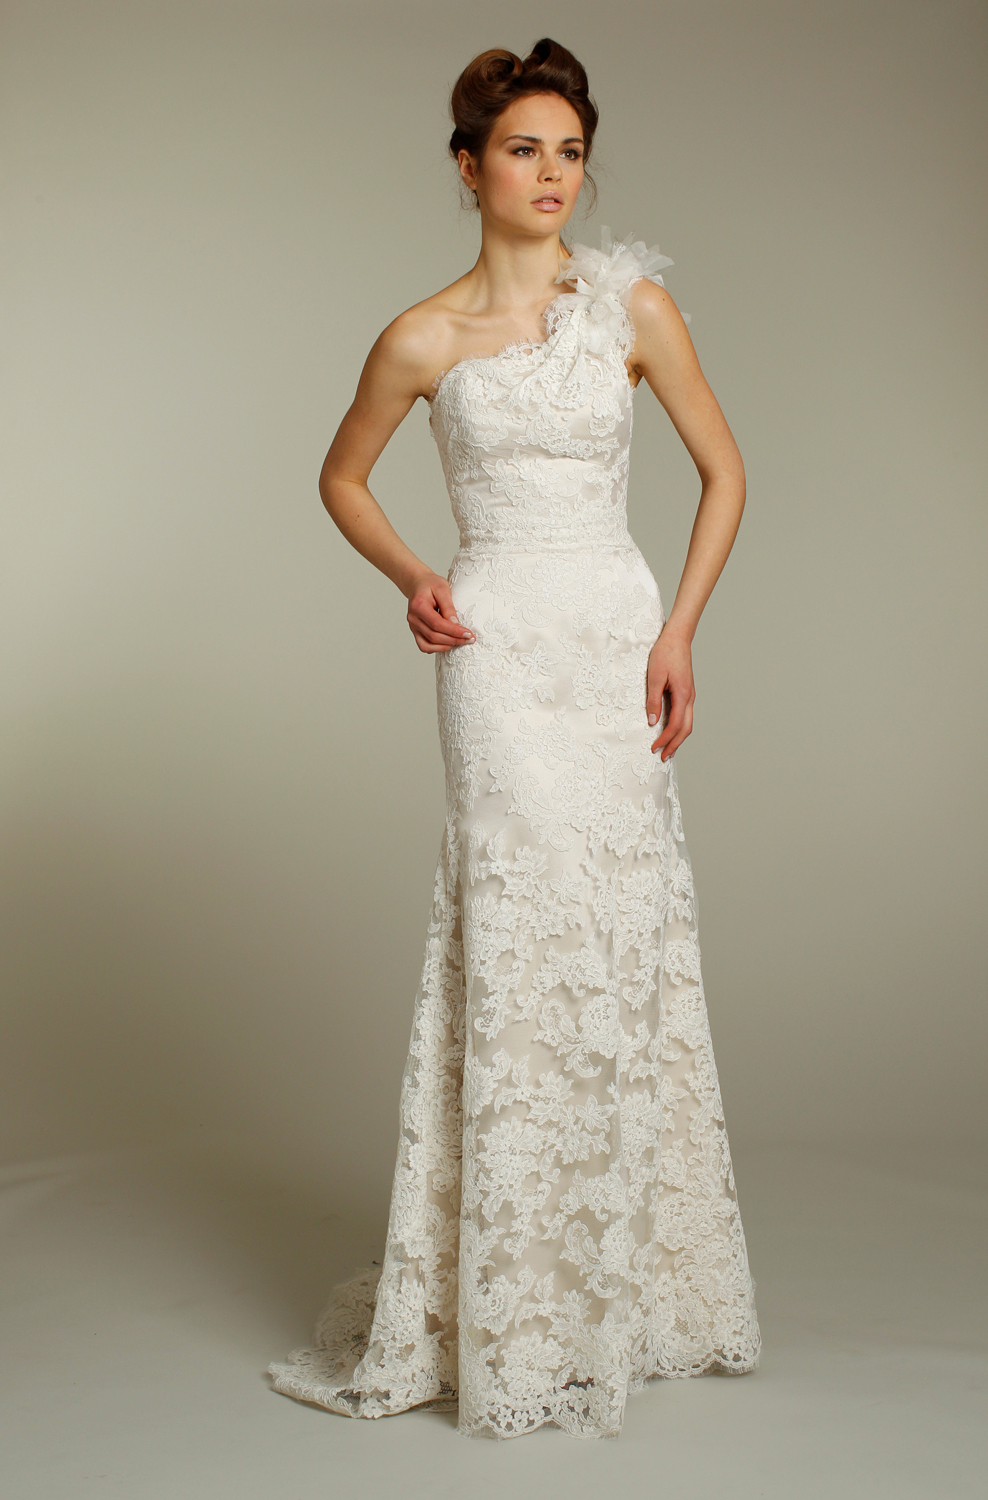 8160-wedding-dress-fall-2011-bridal-gowns-lace.original